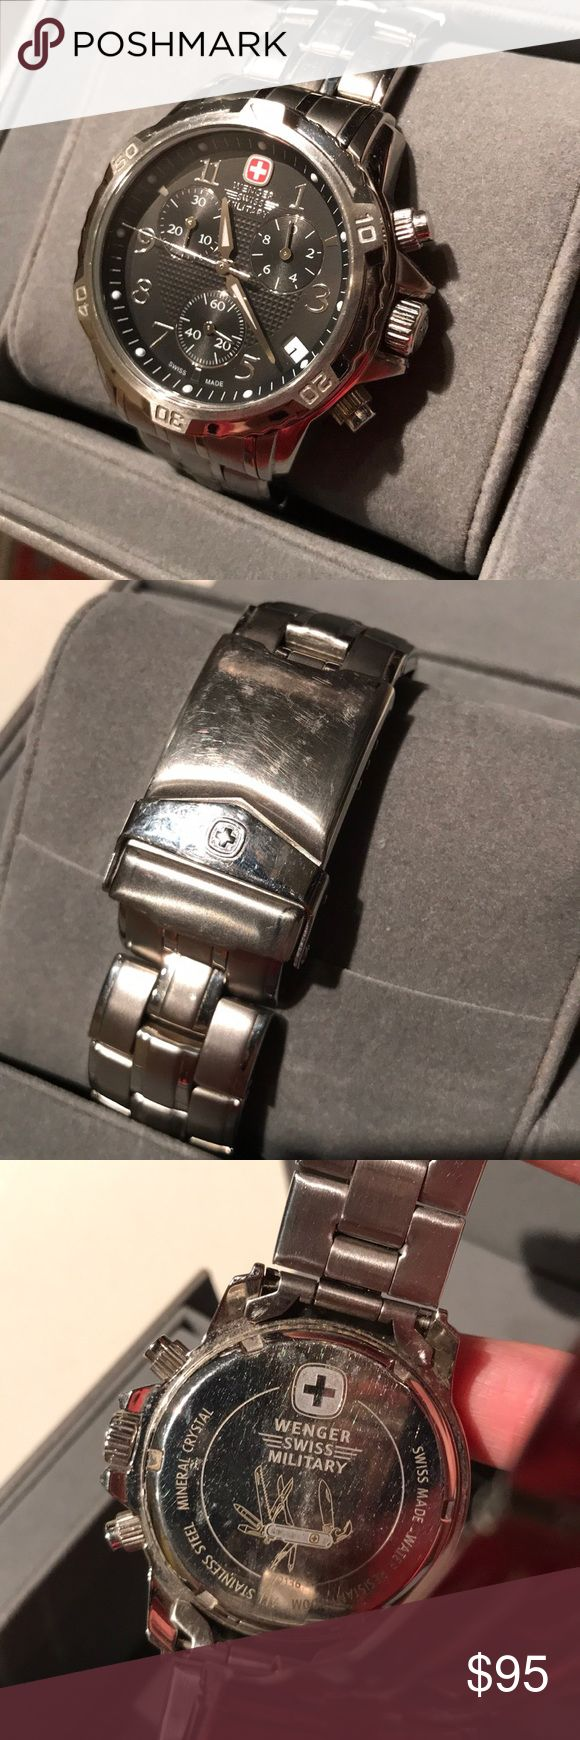 Men's Swiss Military Watch Wegnwr Swiss military watch- chronograph style. Surface scratches on the clasp as seen in picture. Light wear throughout. No scratches on glass Wegner Accessories Watches